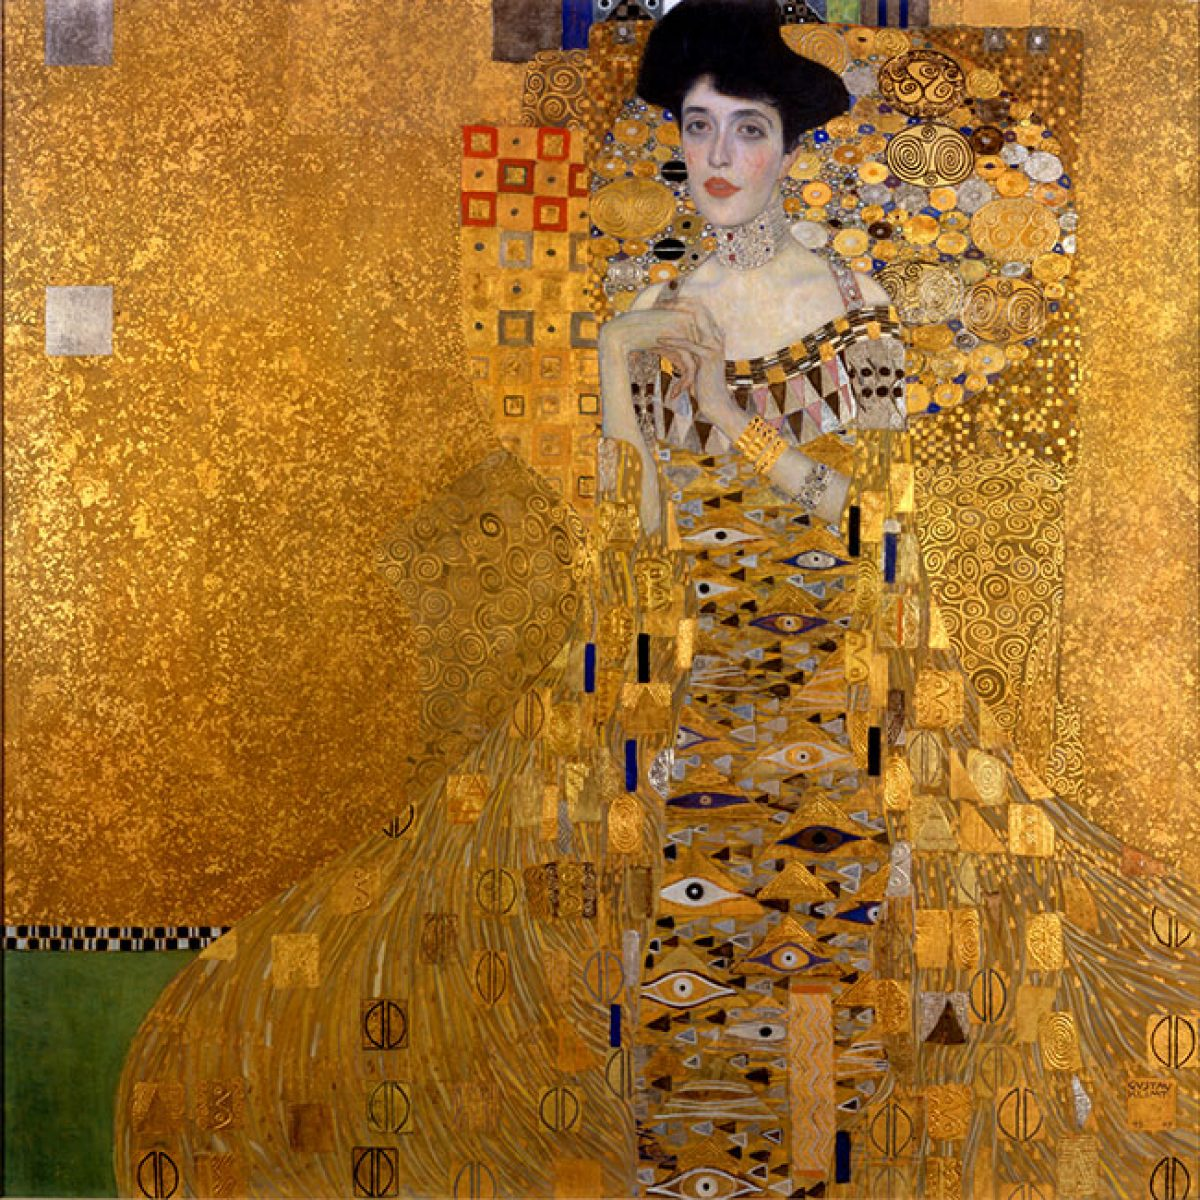 Catching up with the Woman in Gold